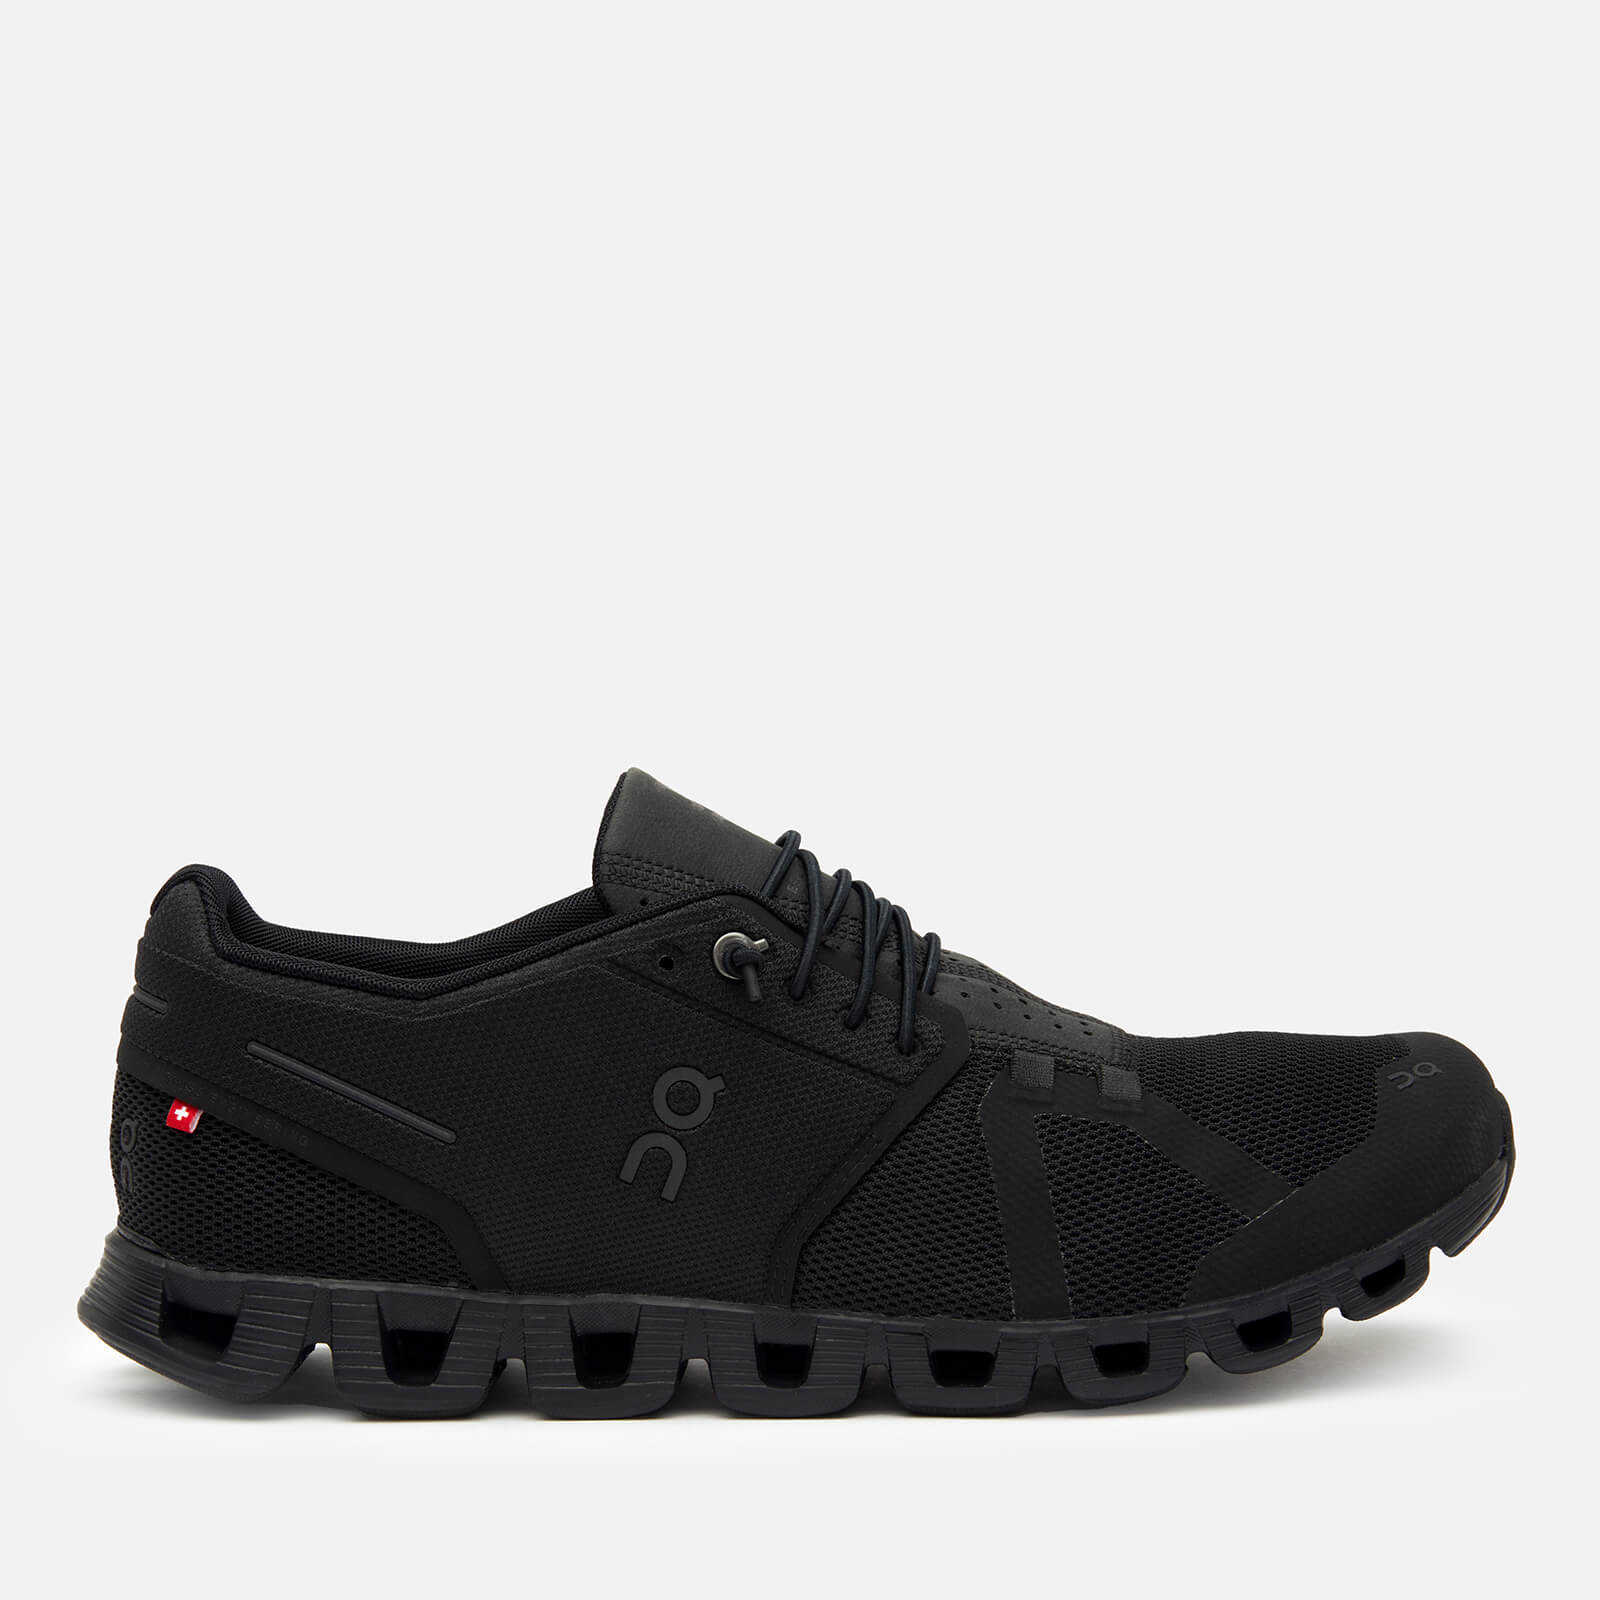 ON Men's Cloud Running Trainers - All Black - UK 7